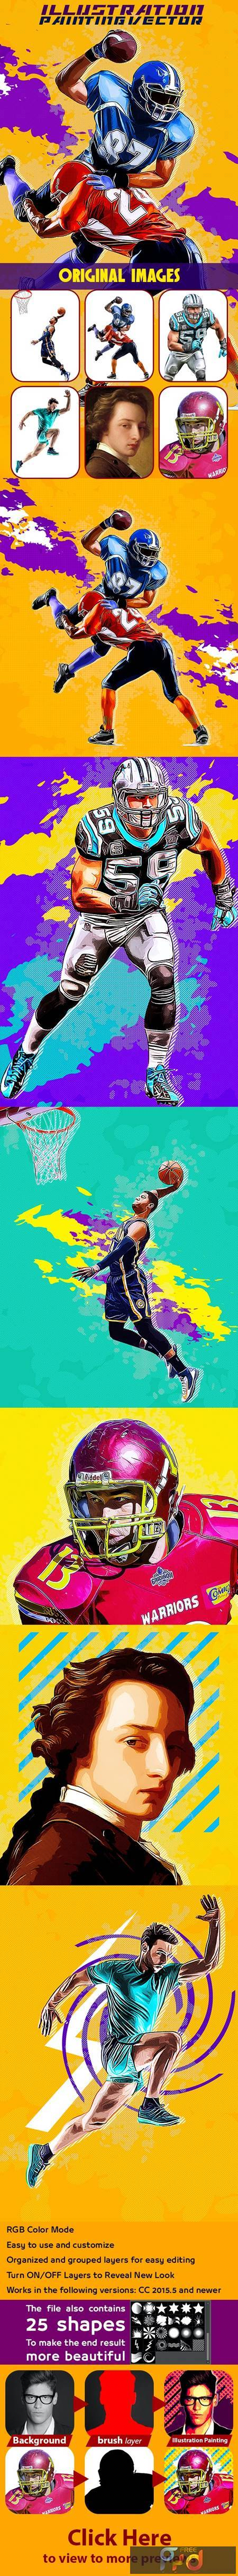 Illustration Painting Vector Action 26581141 1